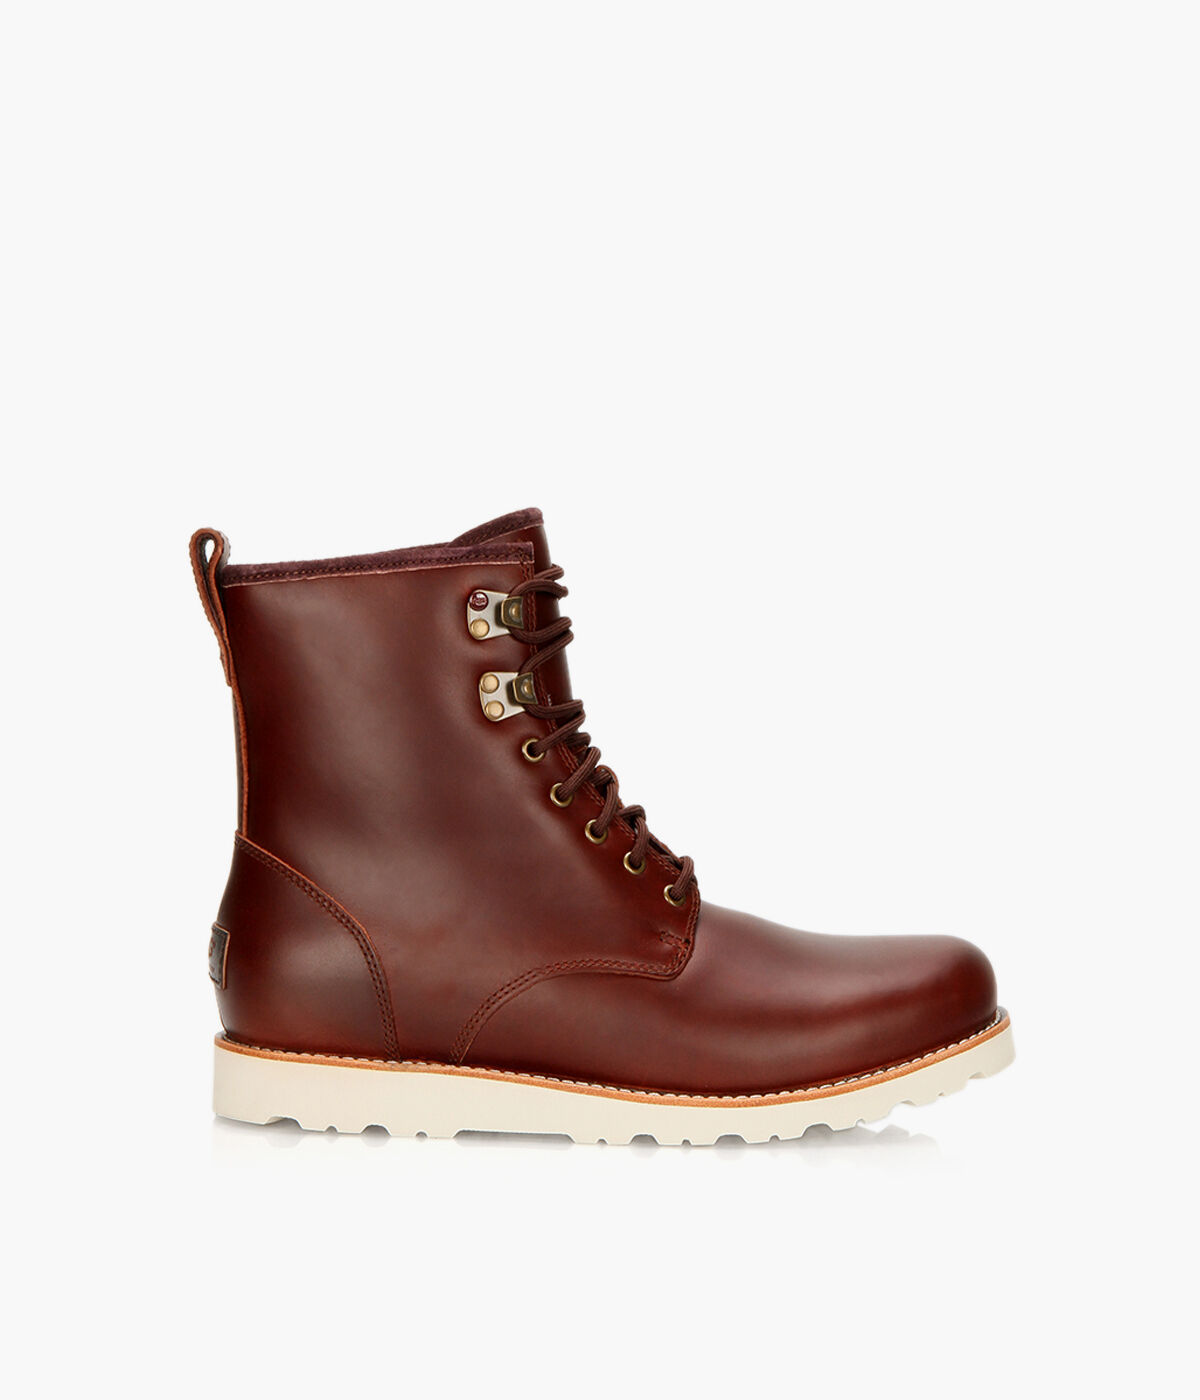 UGG HANNEN - Leather | Browns Shoes